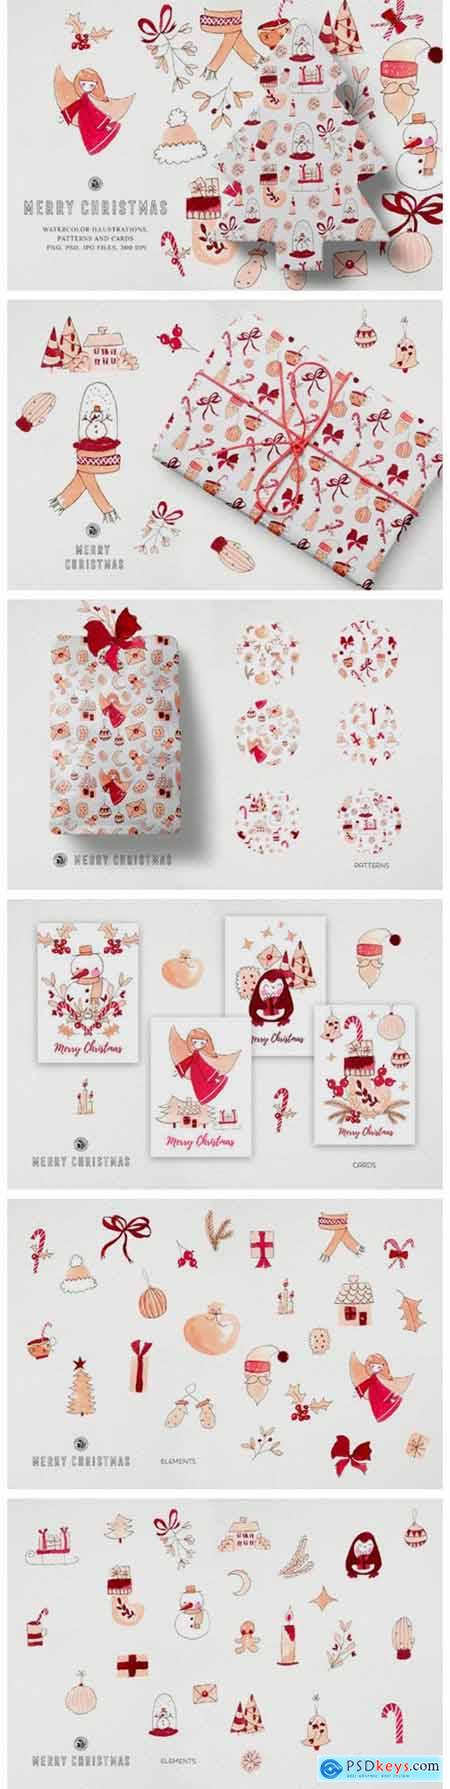 Watercolor Clipart - Merry Christmas 6107726